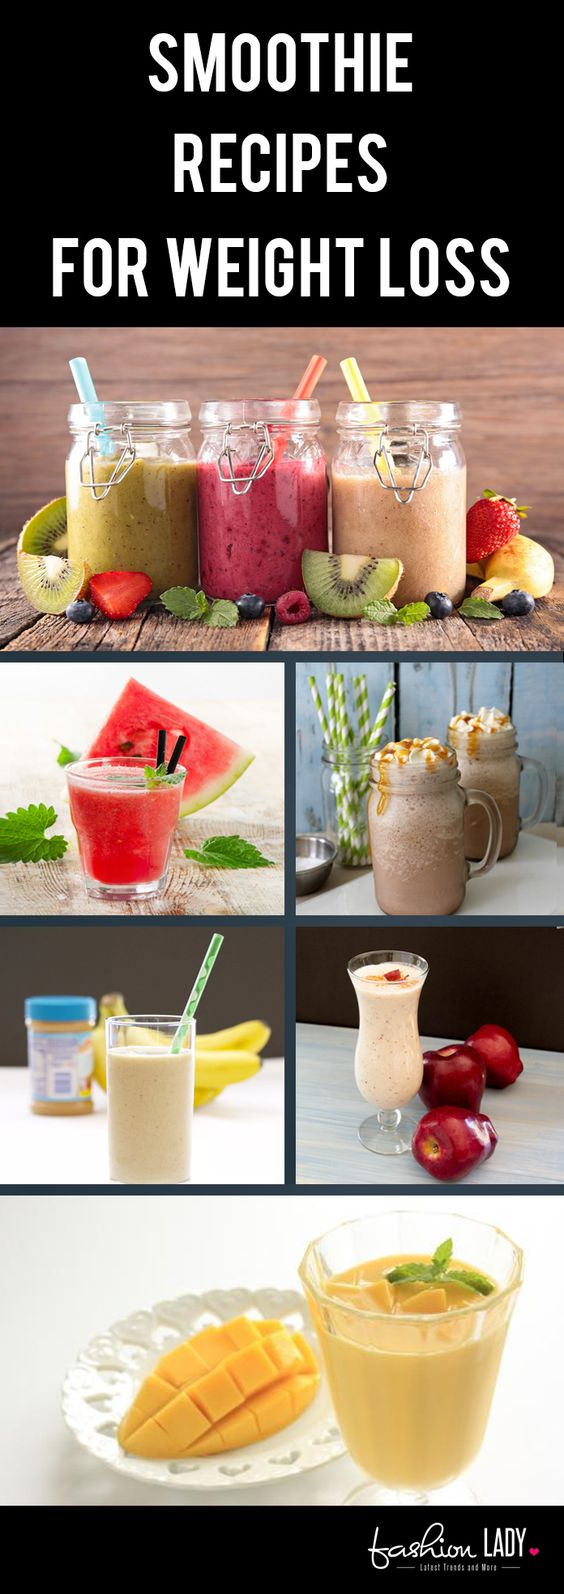 Smoothie Recipes for Weight Loss - They Lip-Smacking!